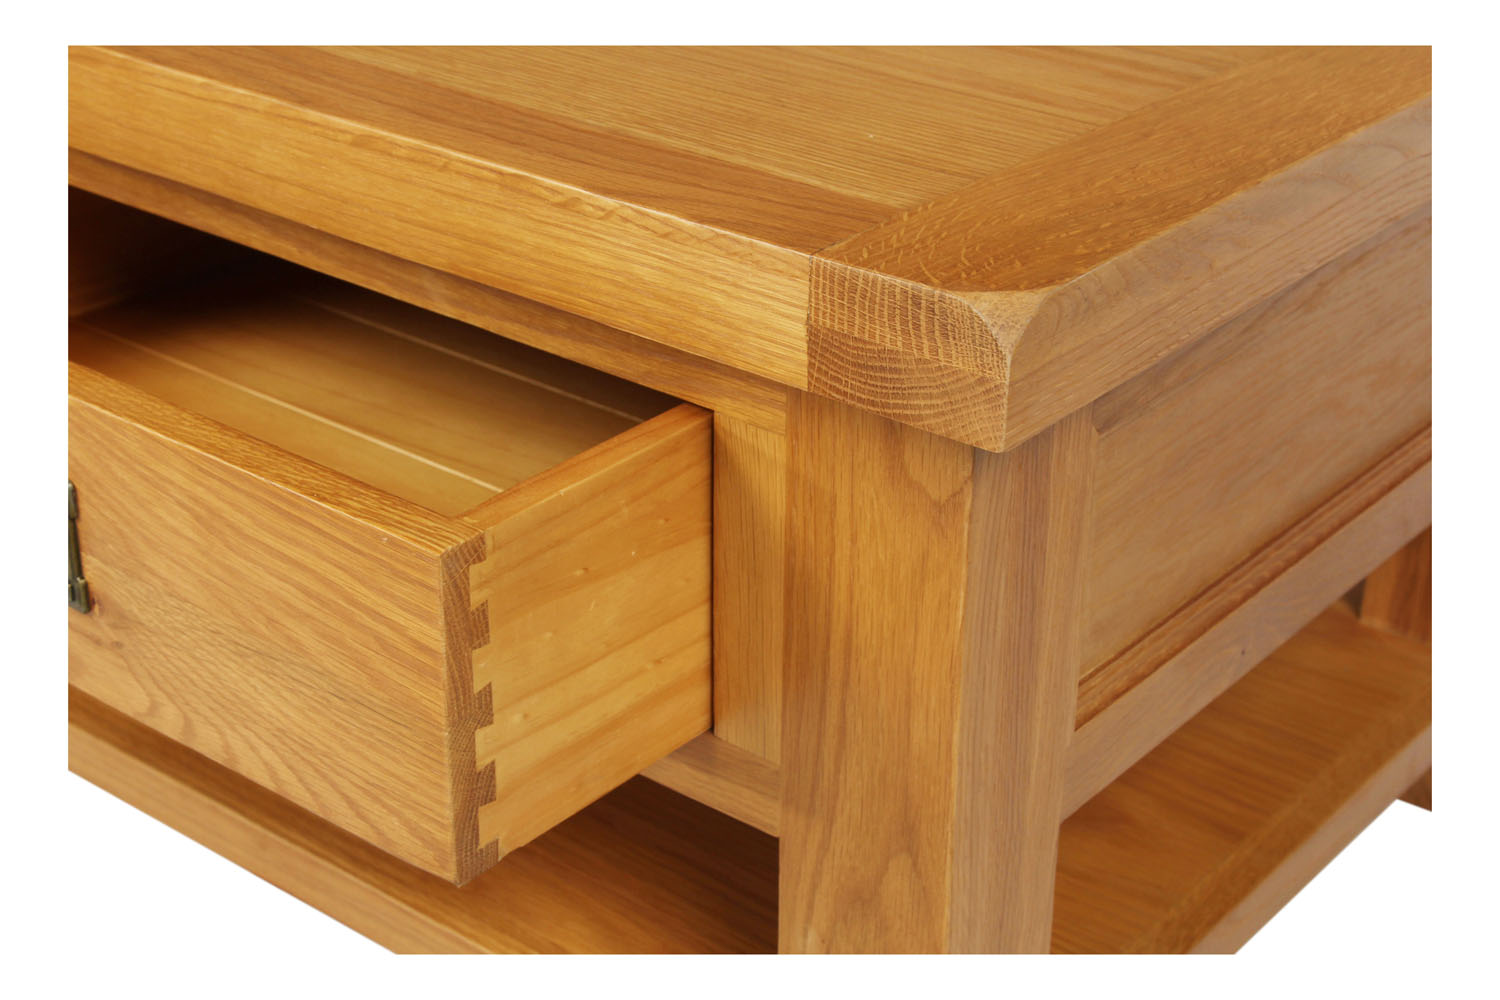 12 drawer coffee table choice image coffee table design ideas country oak large 4 drawer coffee table with shelf geotapseo choice image geotapseo Image collections